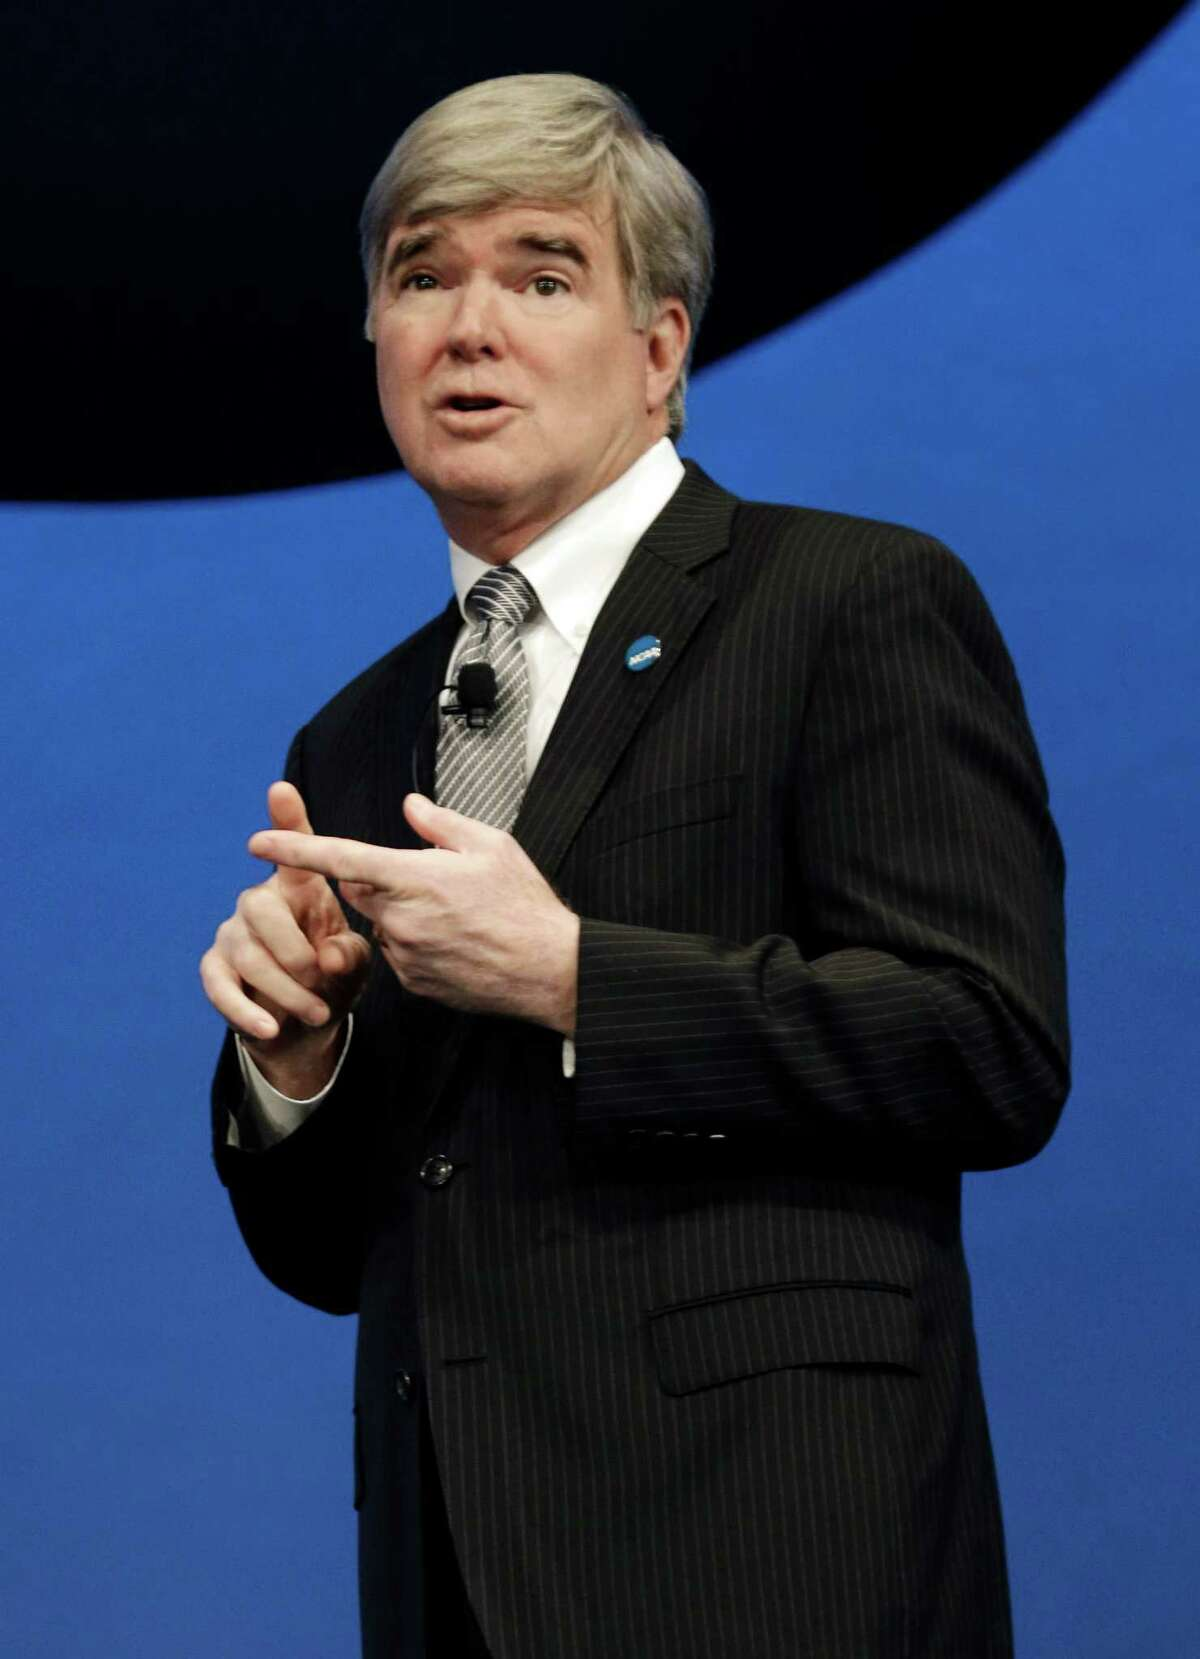 NCAA President Mark Emmert speaks at the organization's annual convention, Thursday, Jan. 17, 2013, in Grapevine, Texas. Emmert delivered his state of the association address on the second day of the group's convention, where several reform measures are on the agenda in the wake of high-profile scandals. The board could make sweeping changes this week, including rules about communicating recruits. (AP Photo/LM Otero)